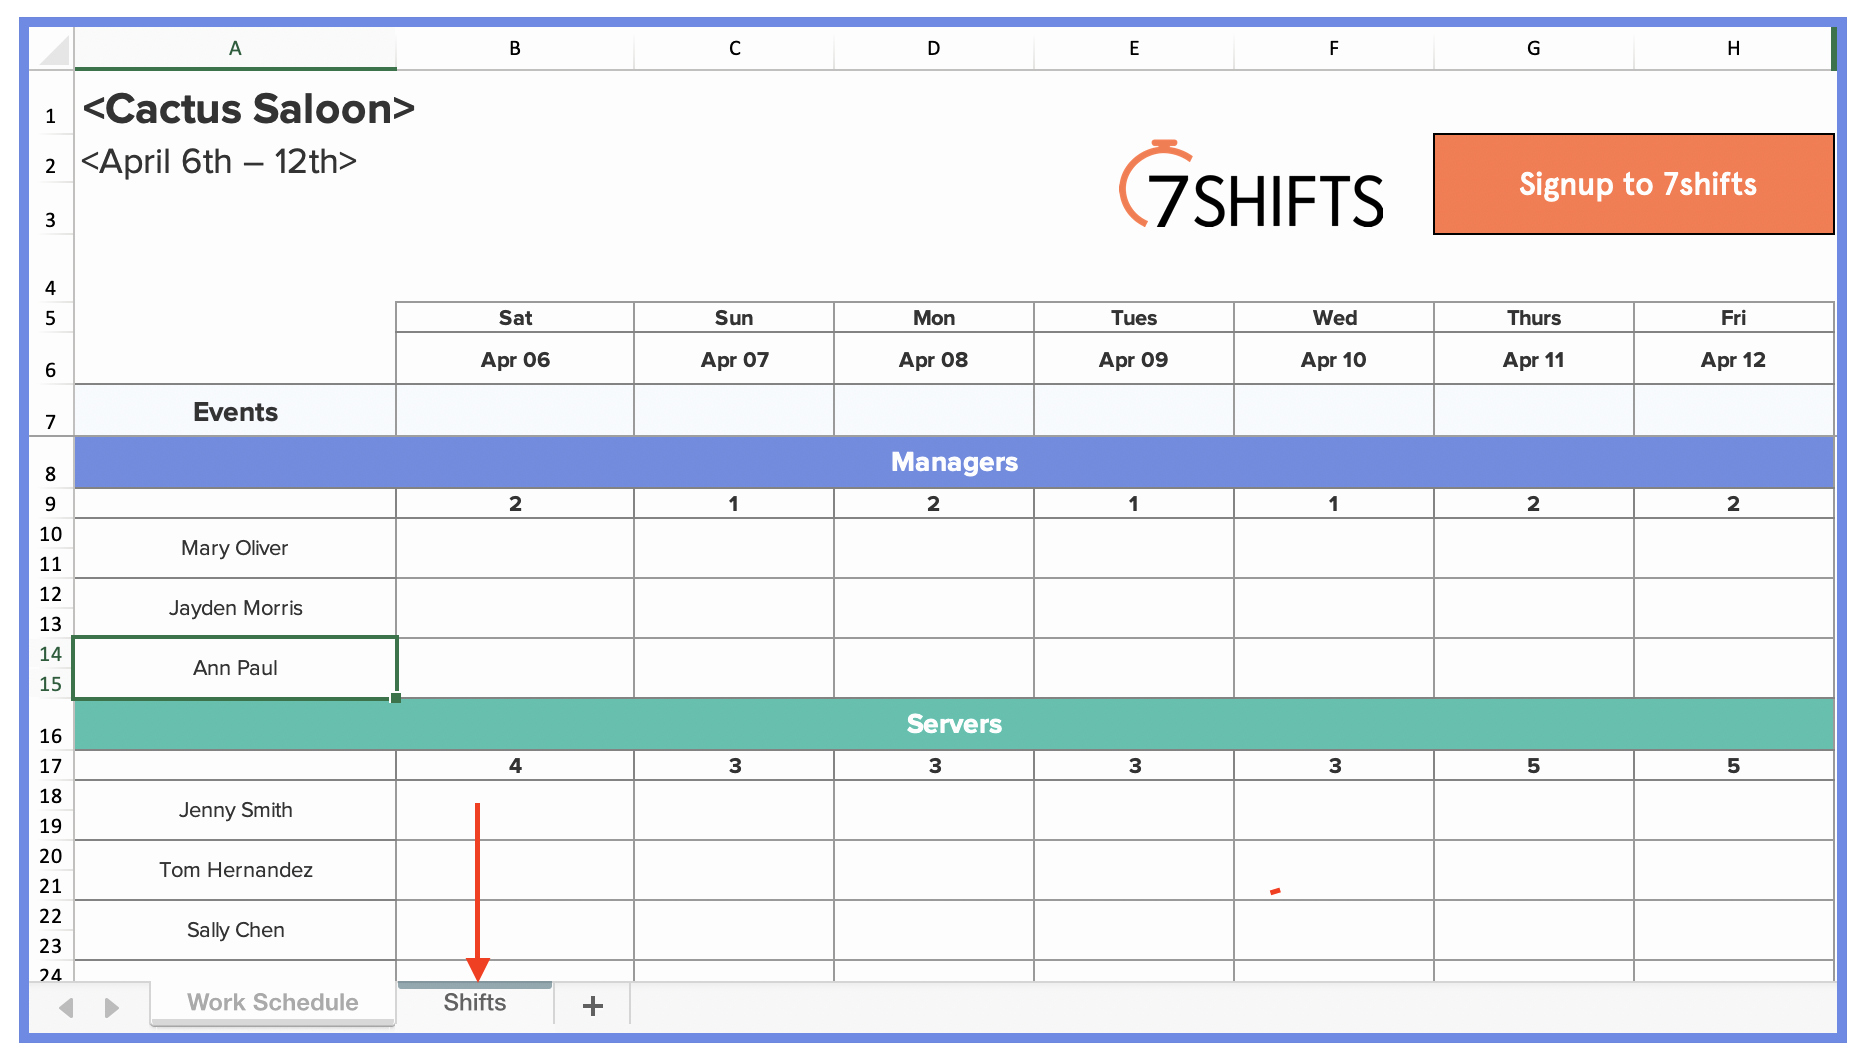 Excel Work Schedule Template Beautiful How to Make A Restaurant Work Schedule with Free Excel